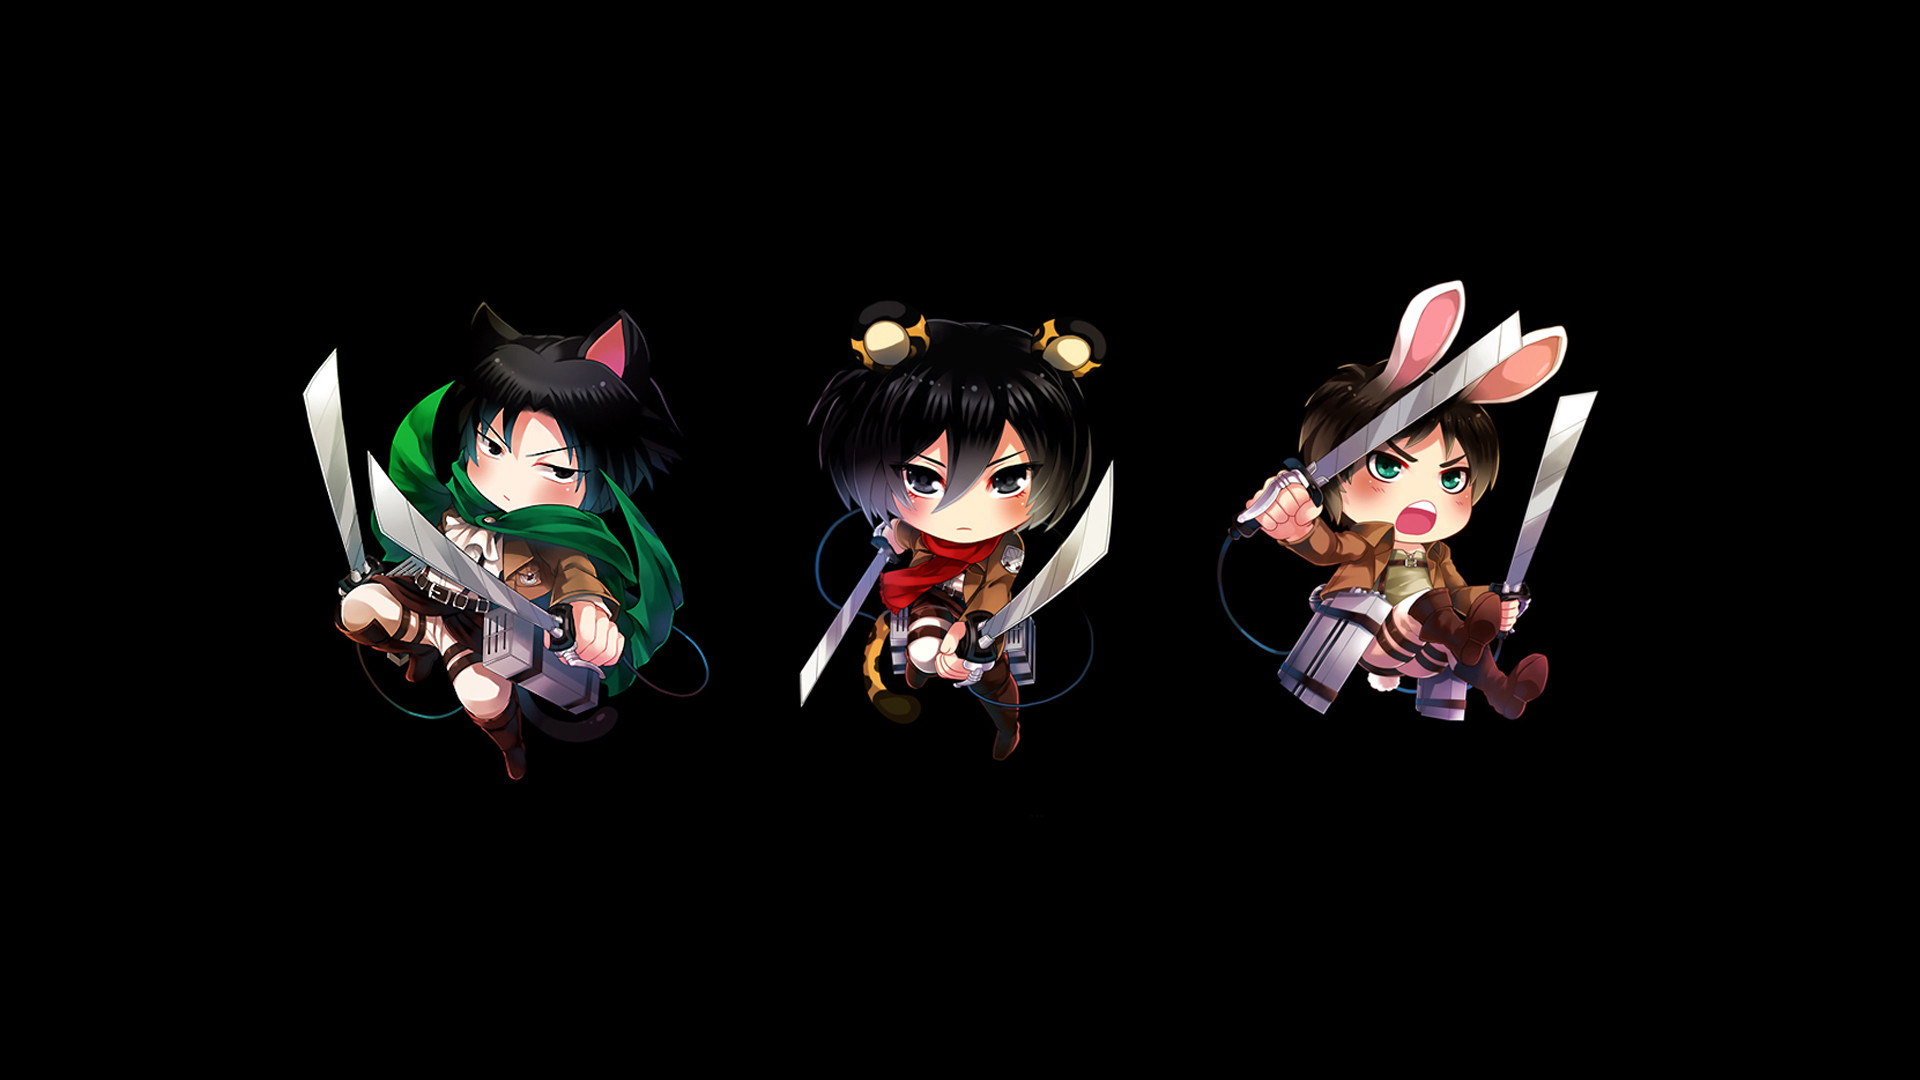 Chibi Backgrounds 59 Pictures